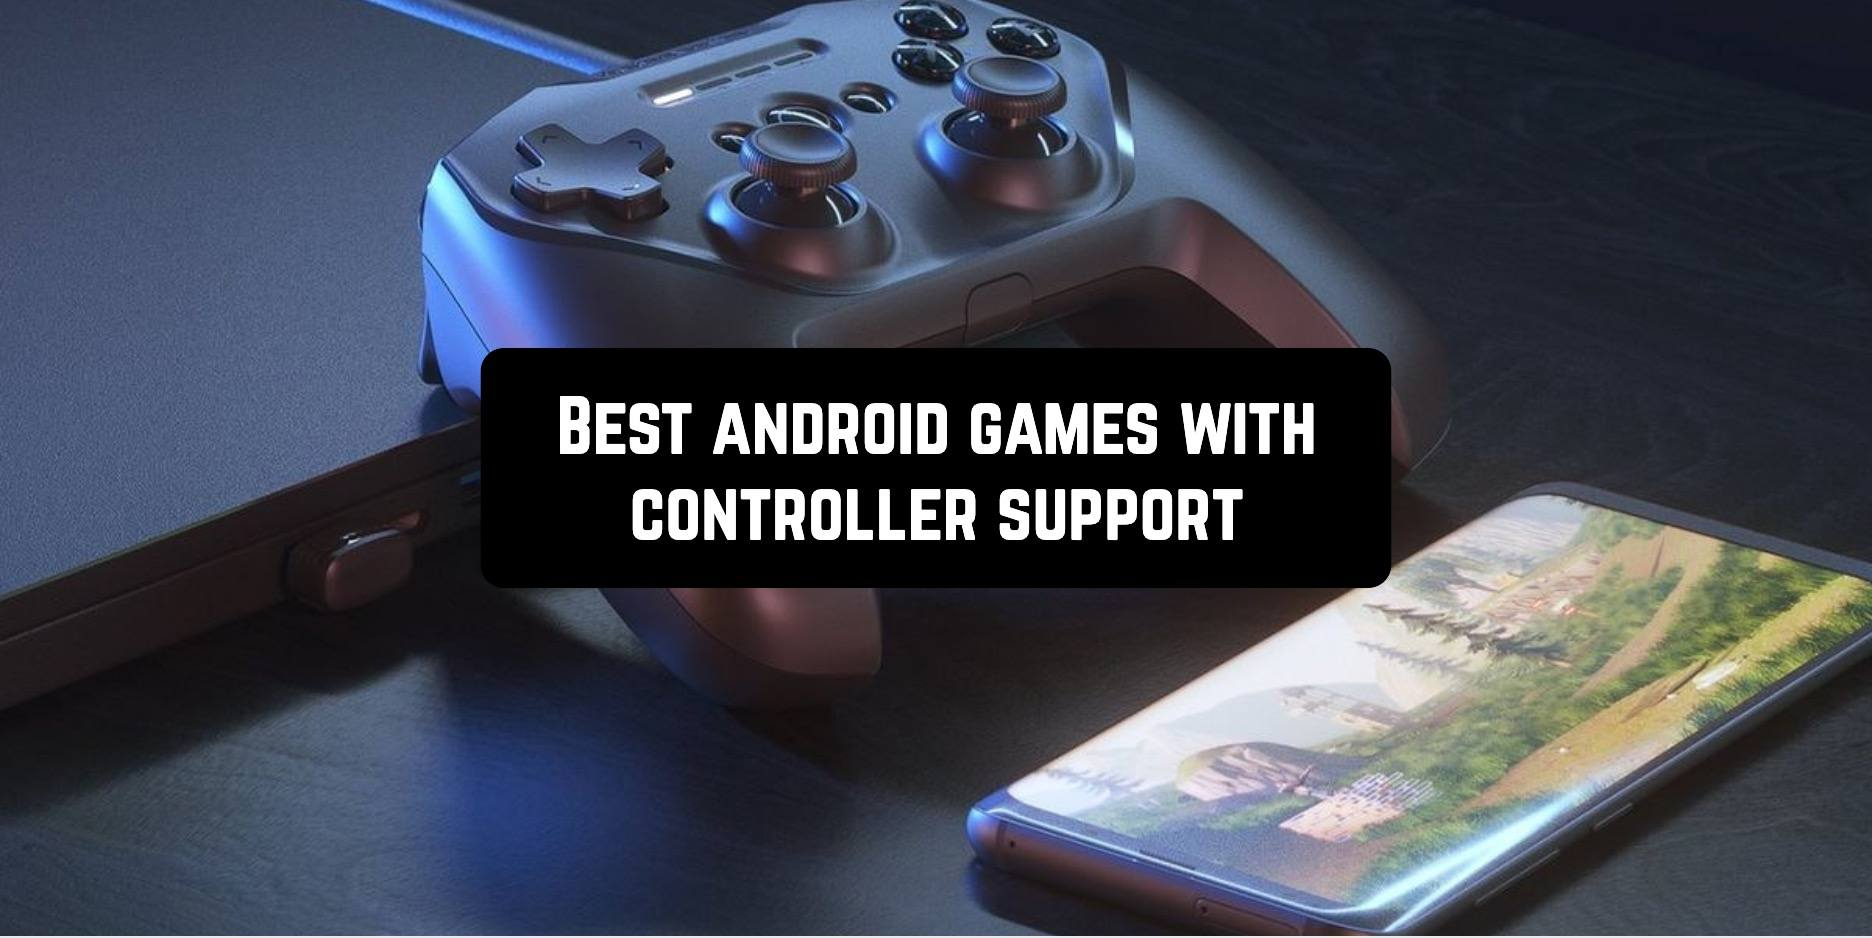 Best Android games with controller support